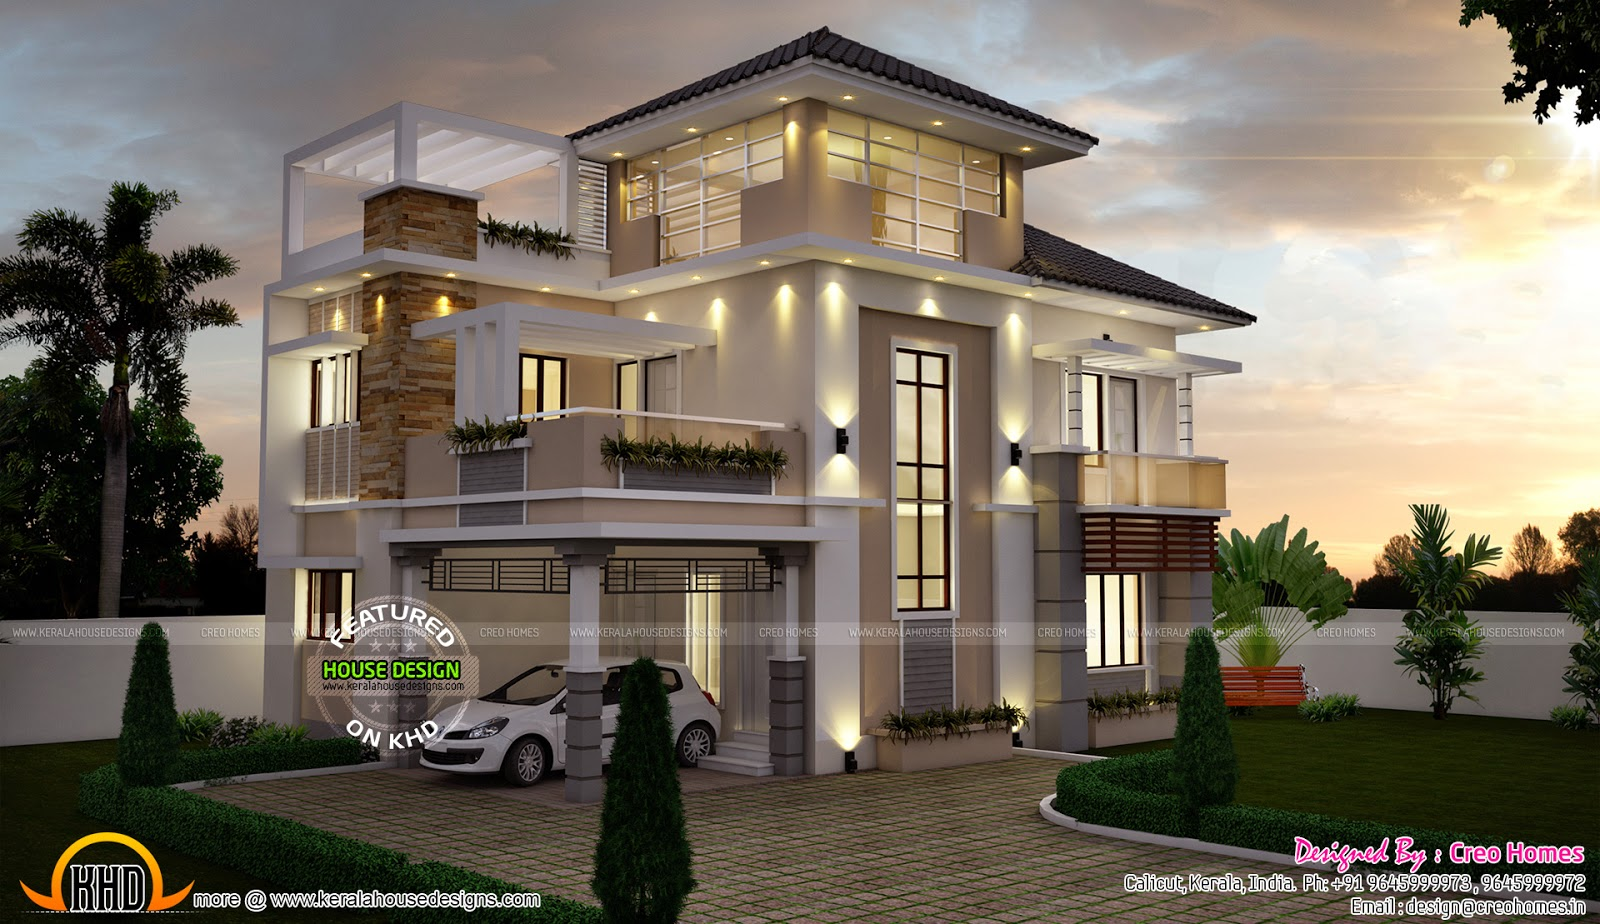 Super stylish contemporary house kerala home design and for Modern homes designs trinidad